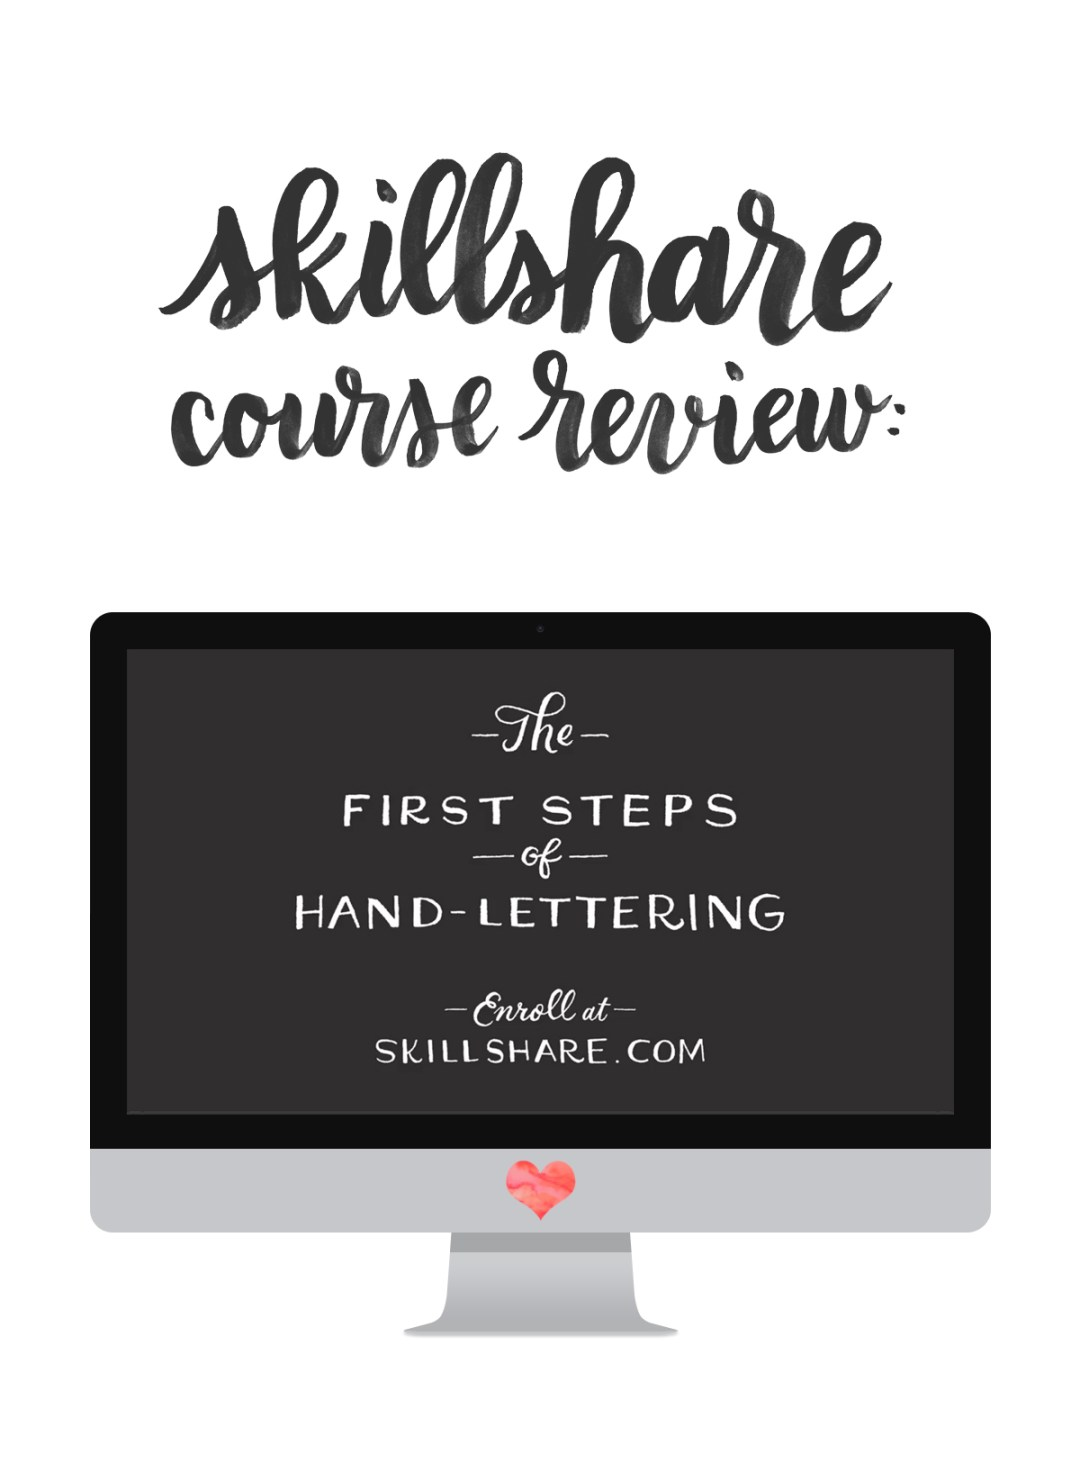 Skillshare Course Review - www.randomolive.com